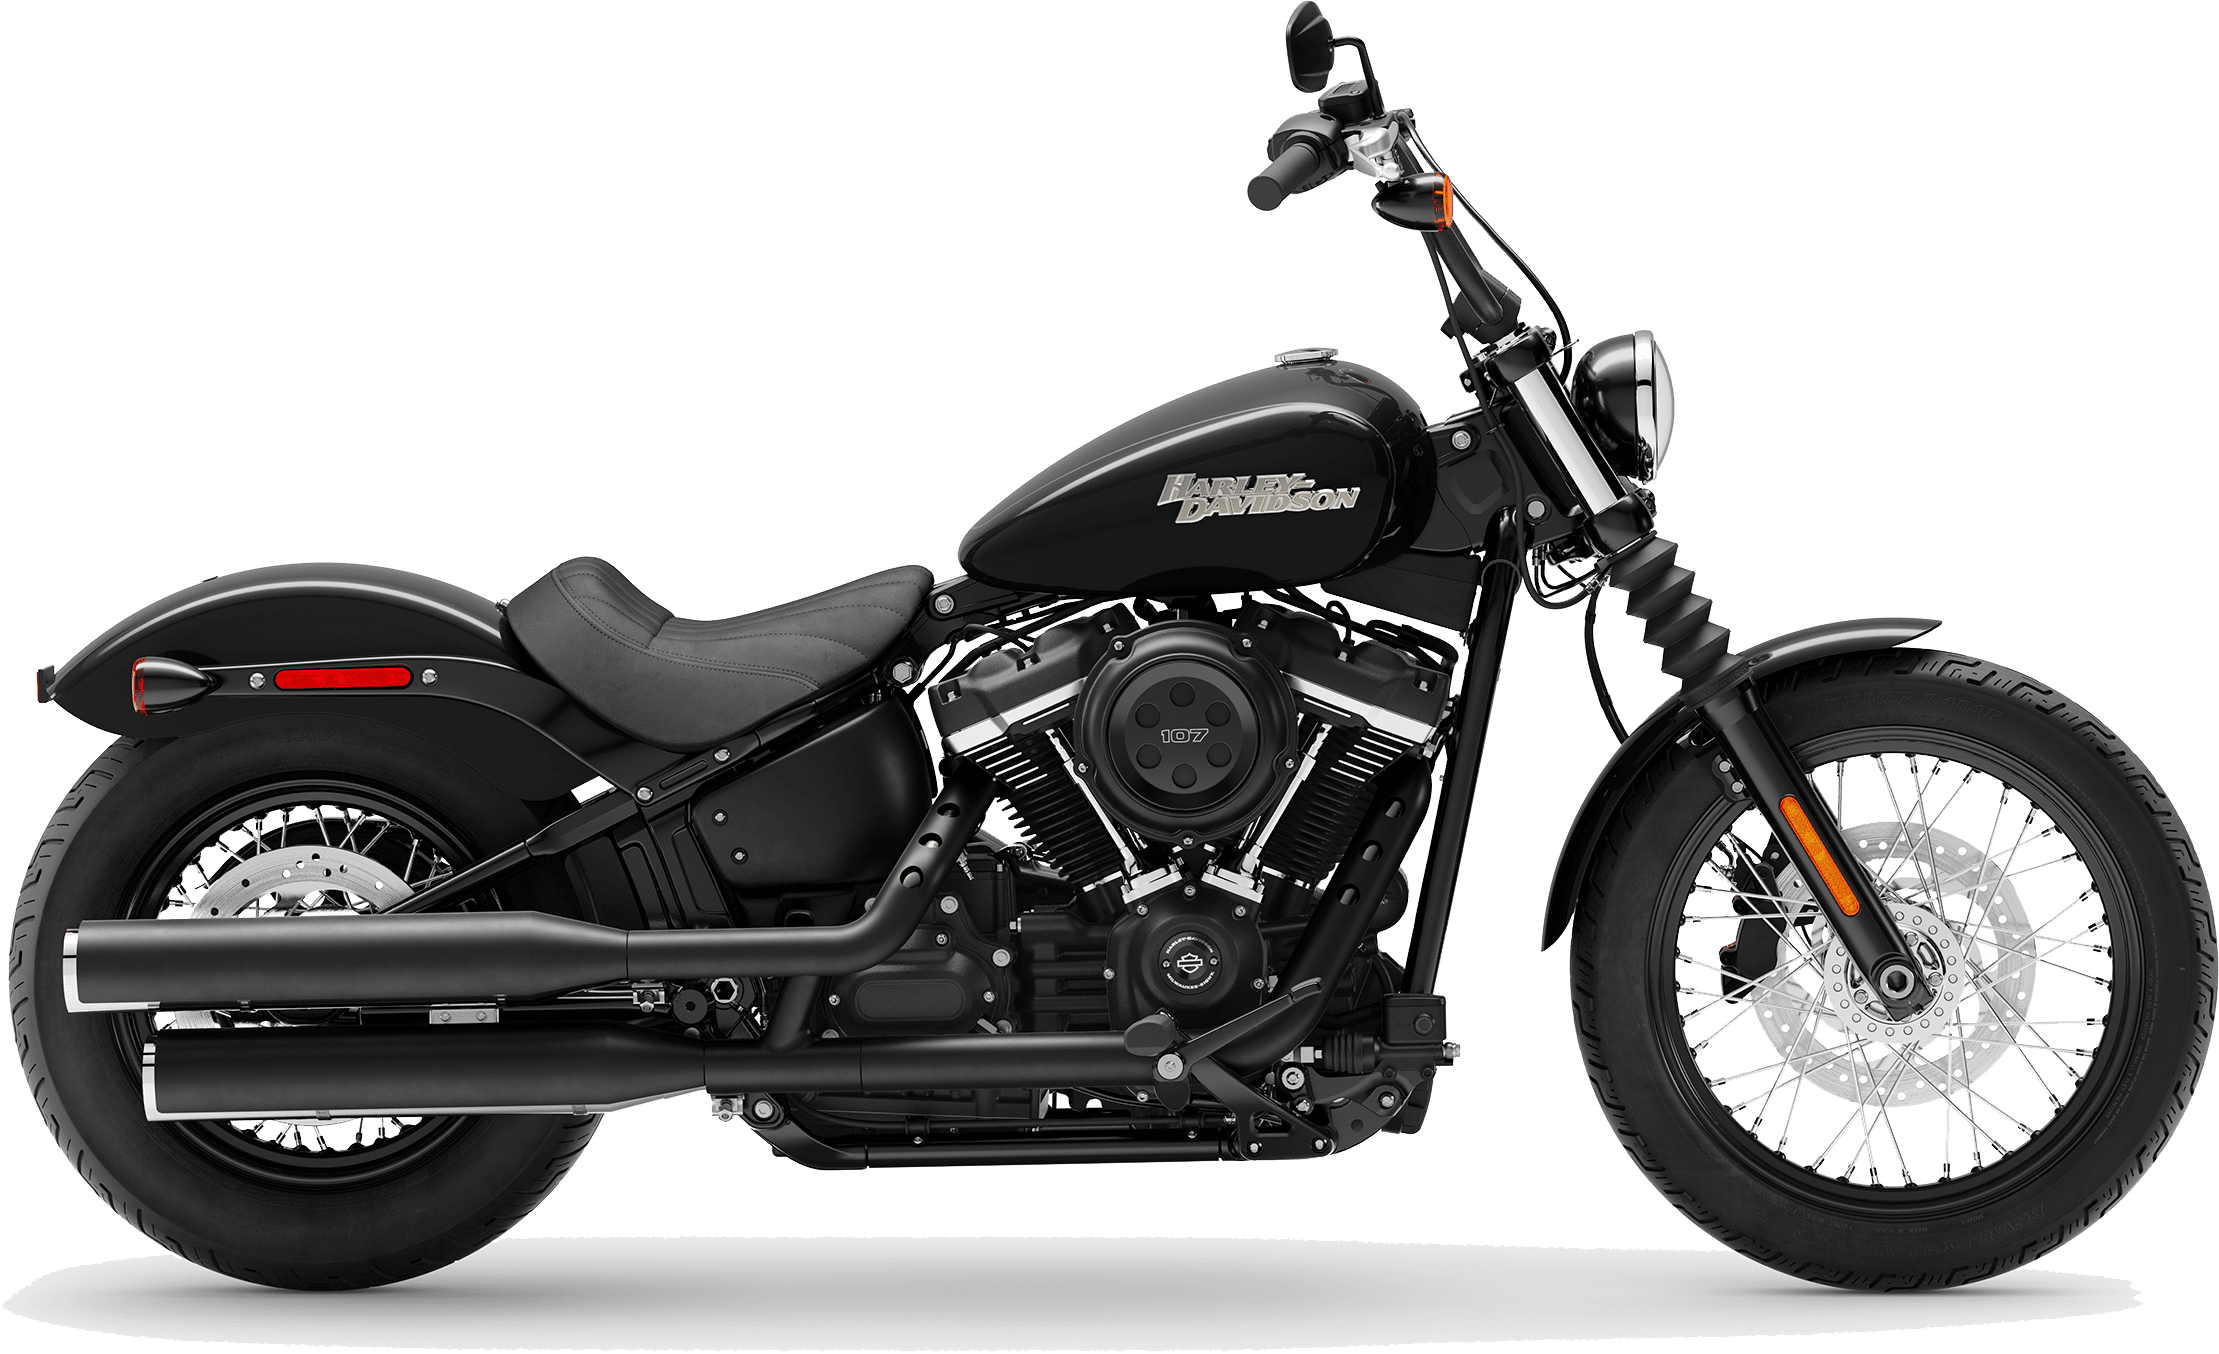 2019 street bob for sale in grandview mo gail 39 s harley davidson. Black Bedroom Furniture Sets. Home Design Ideas